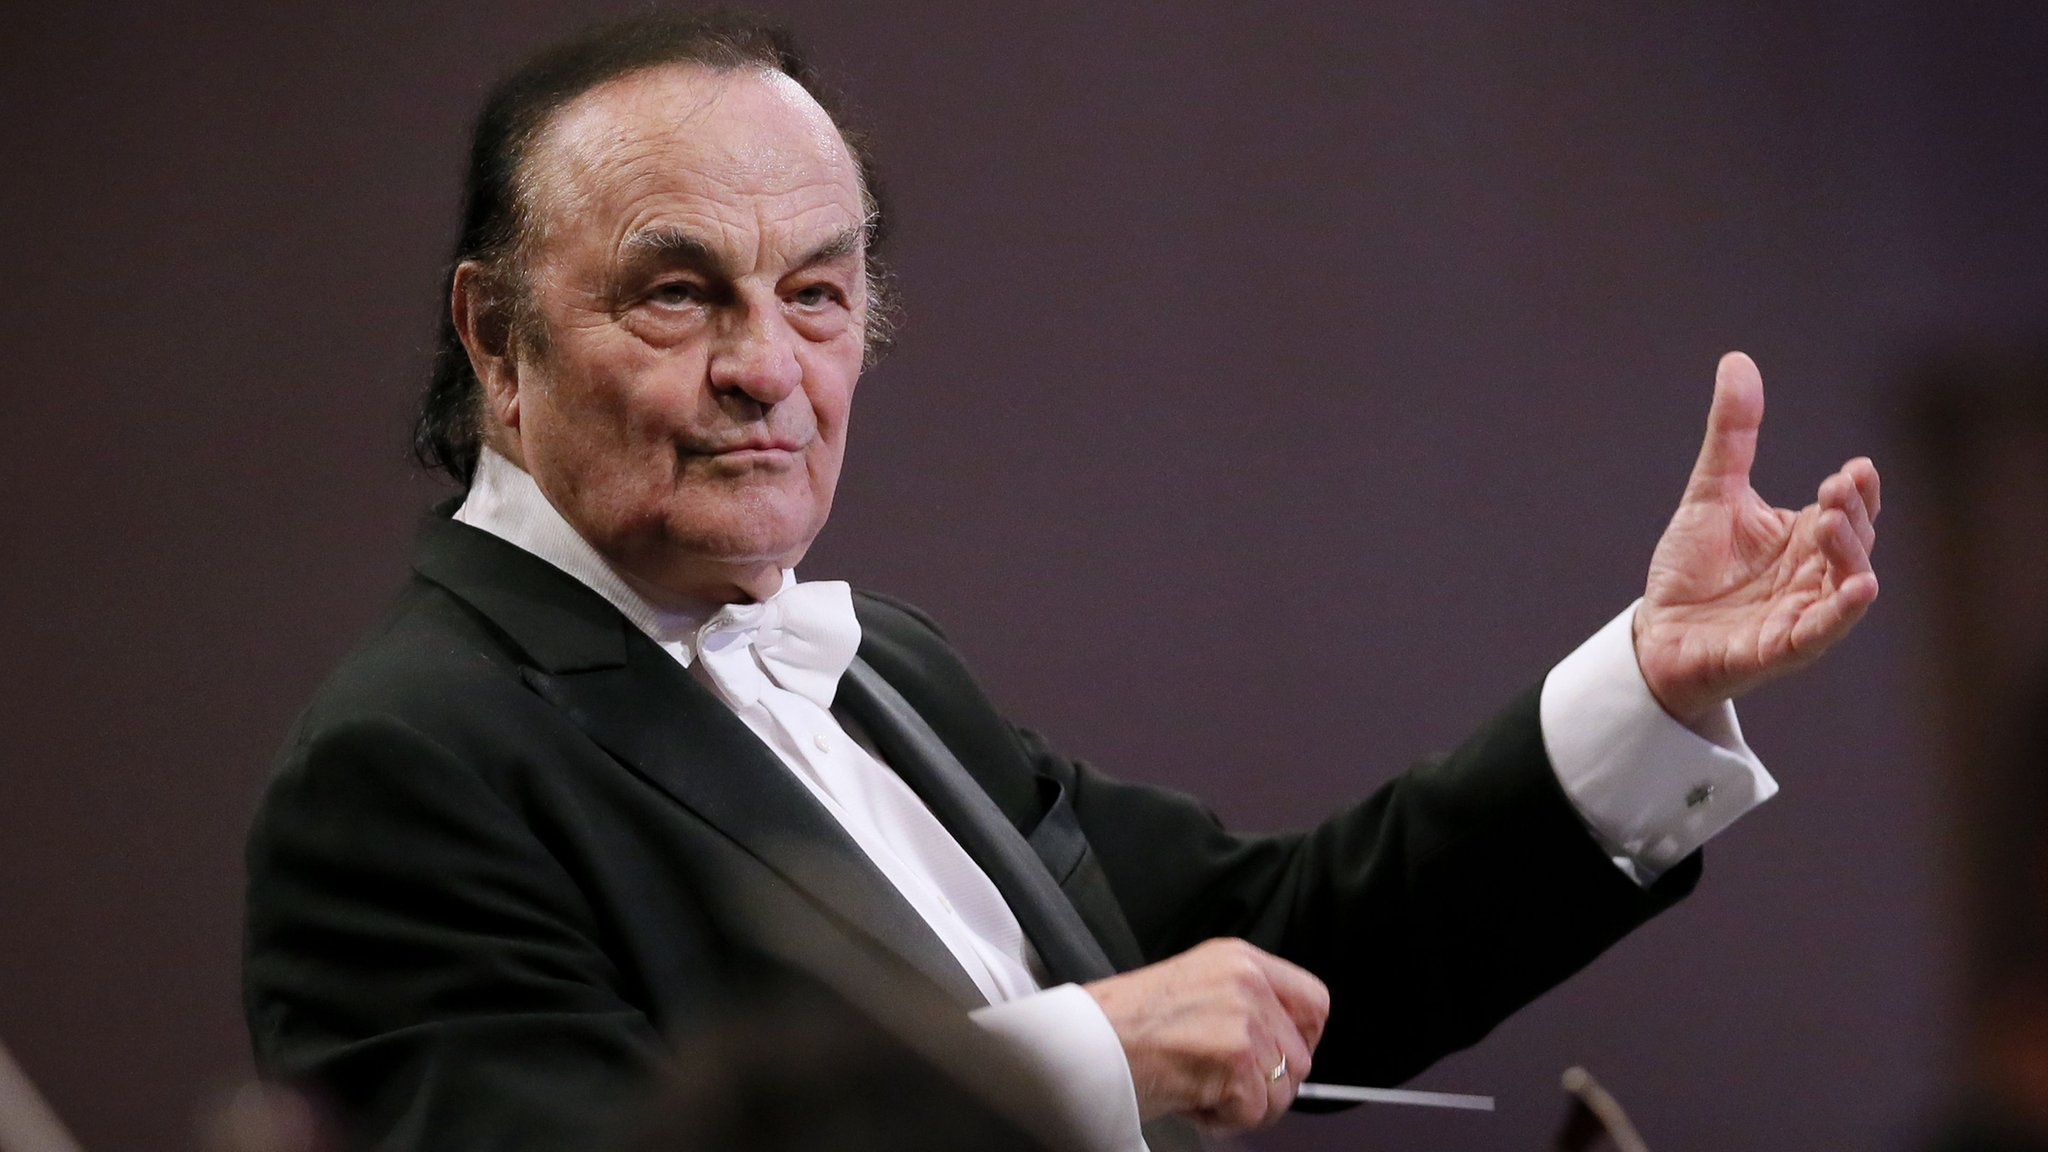 Conductor Charles Dutoit accused of sexual harassment